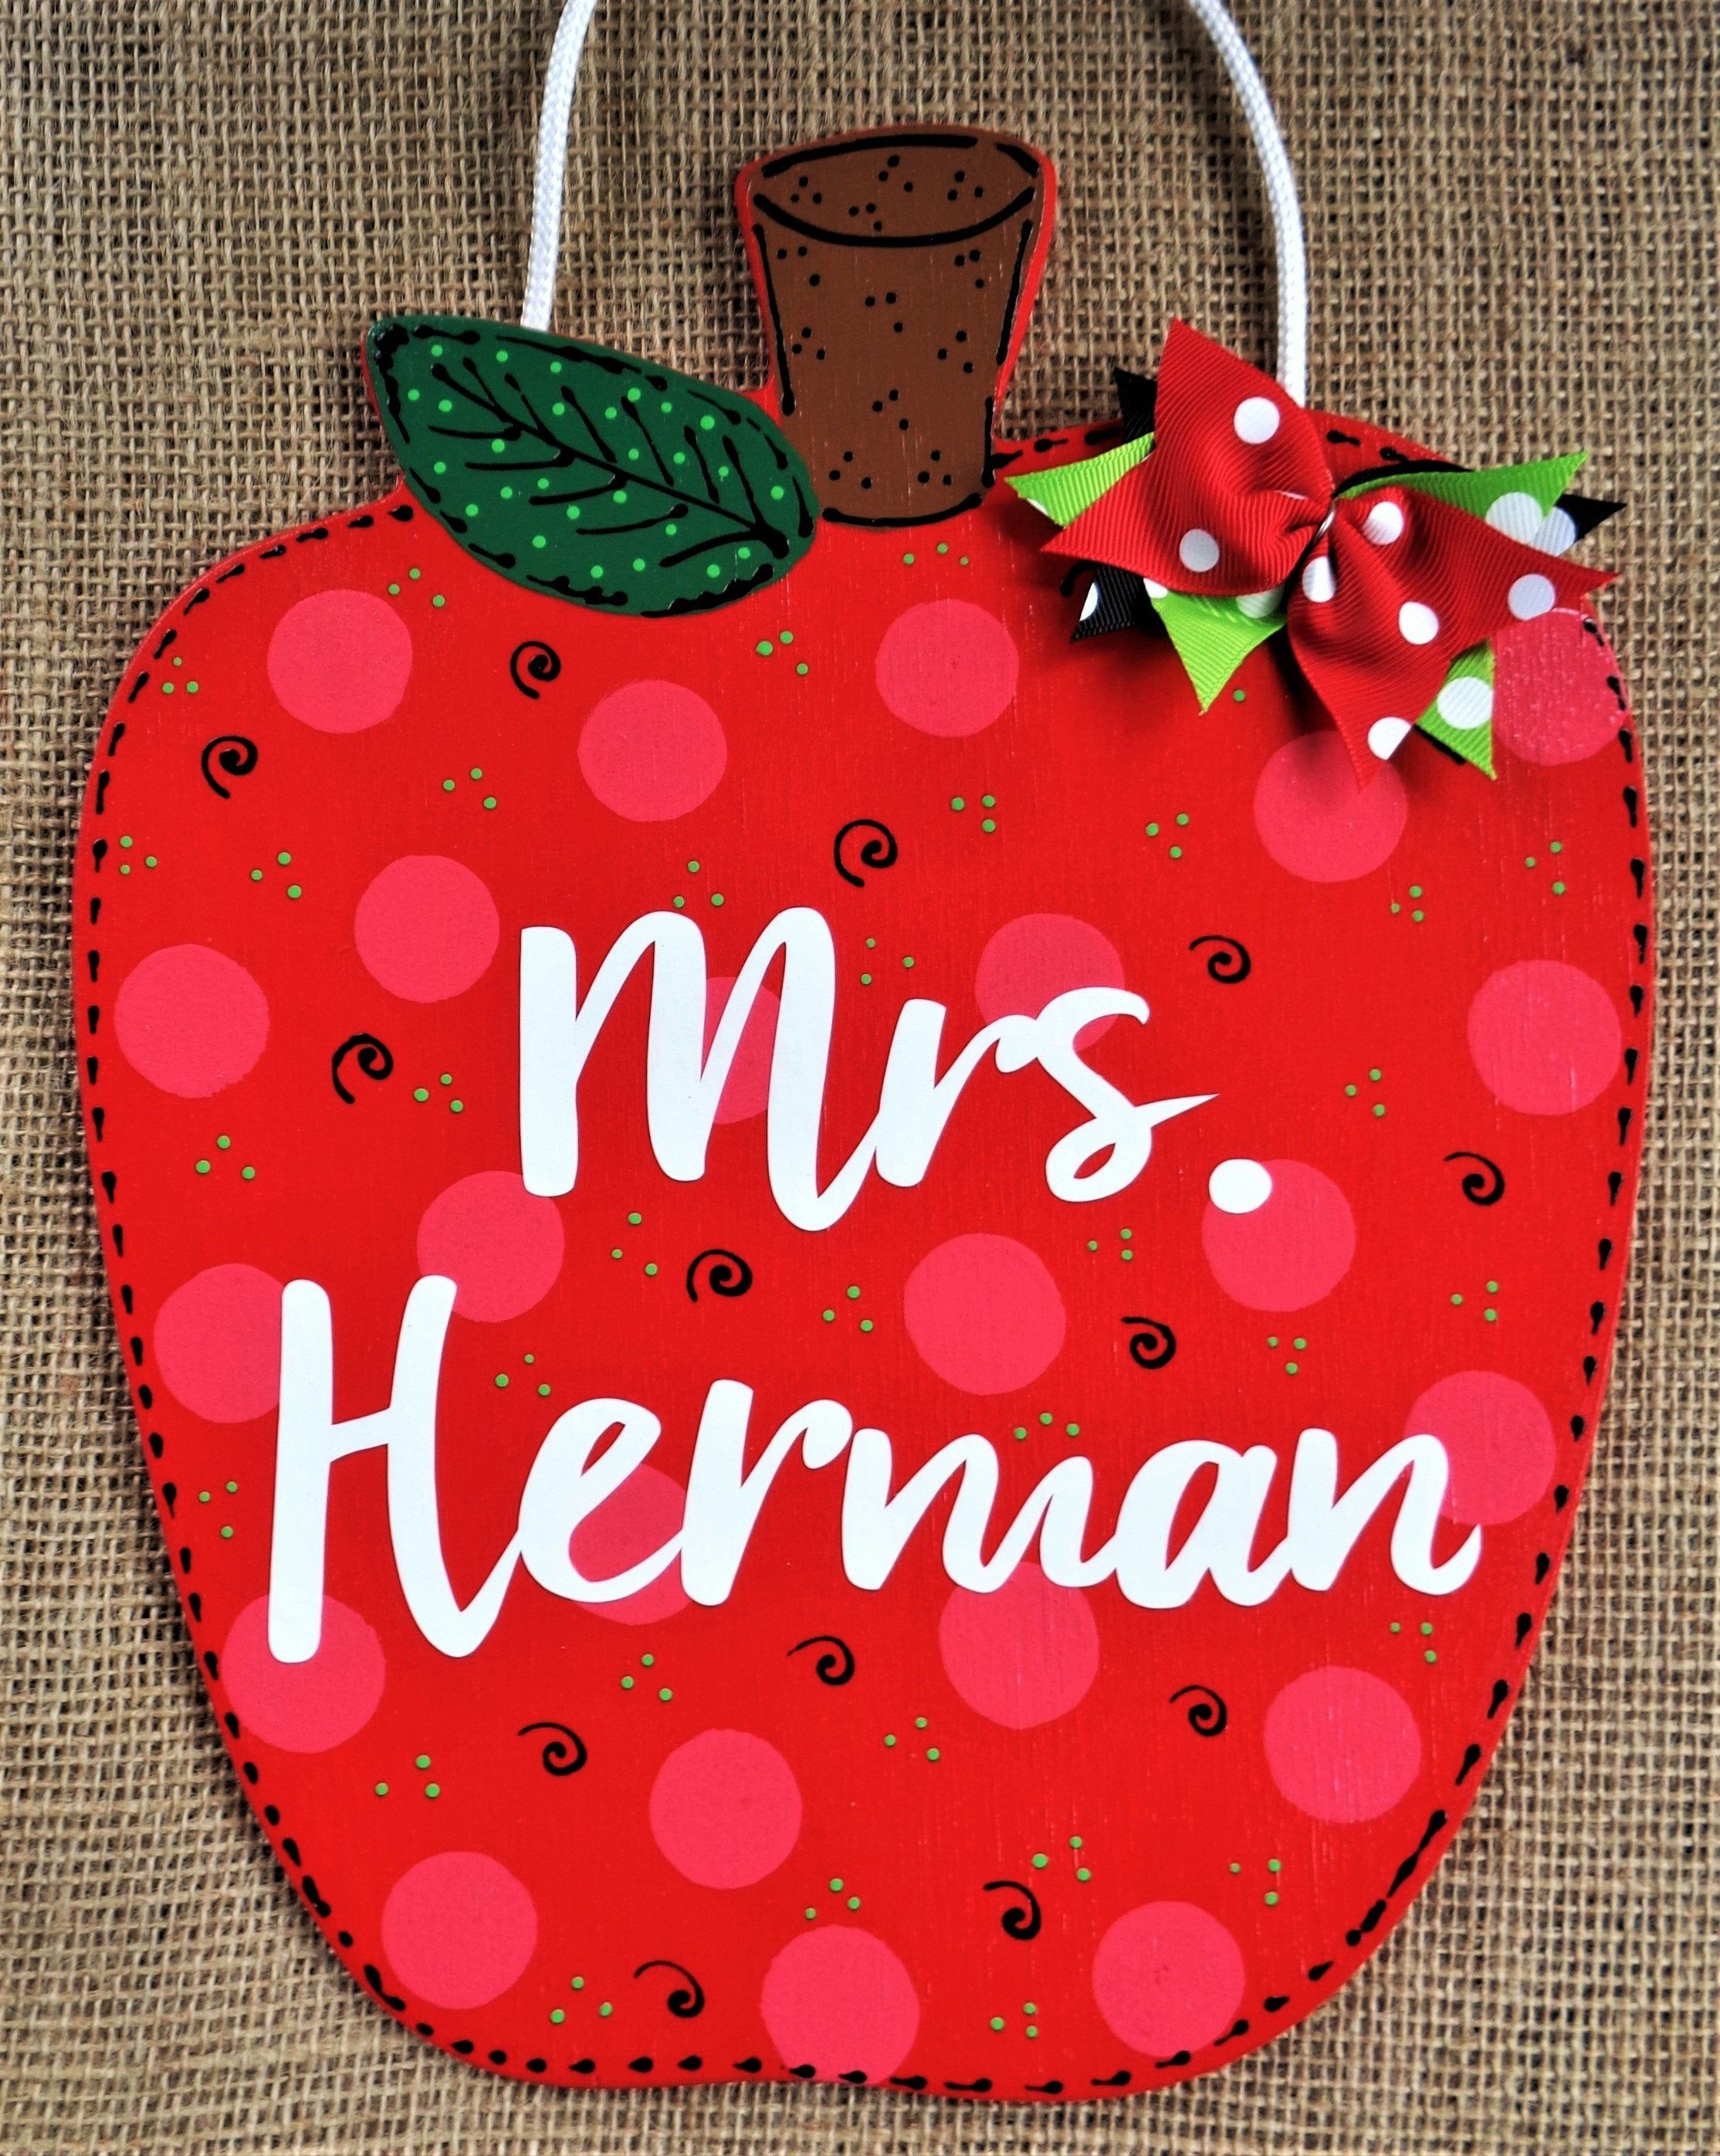 Personalized Apple Teacher Sign Class Classroom Name Room Door Plaque School Decor Country Wood Crafts Handcrafted Hand Painted Wood Wooden In 2020 Country Wood Crafts Hand Painted Wood Crafts